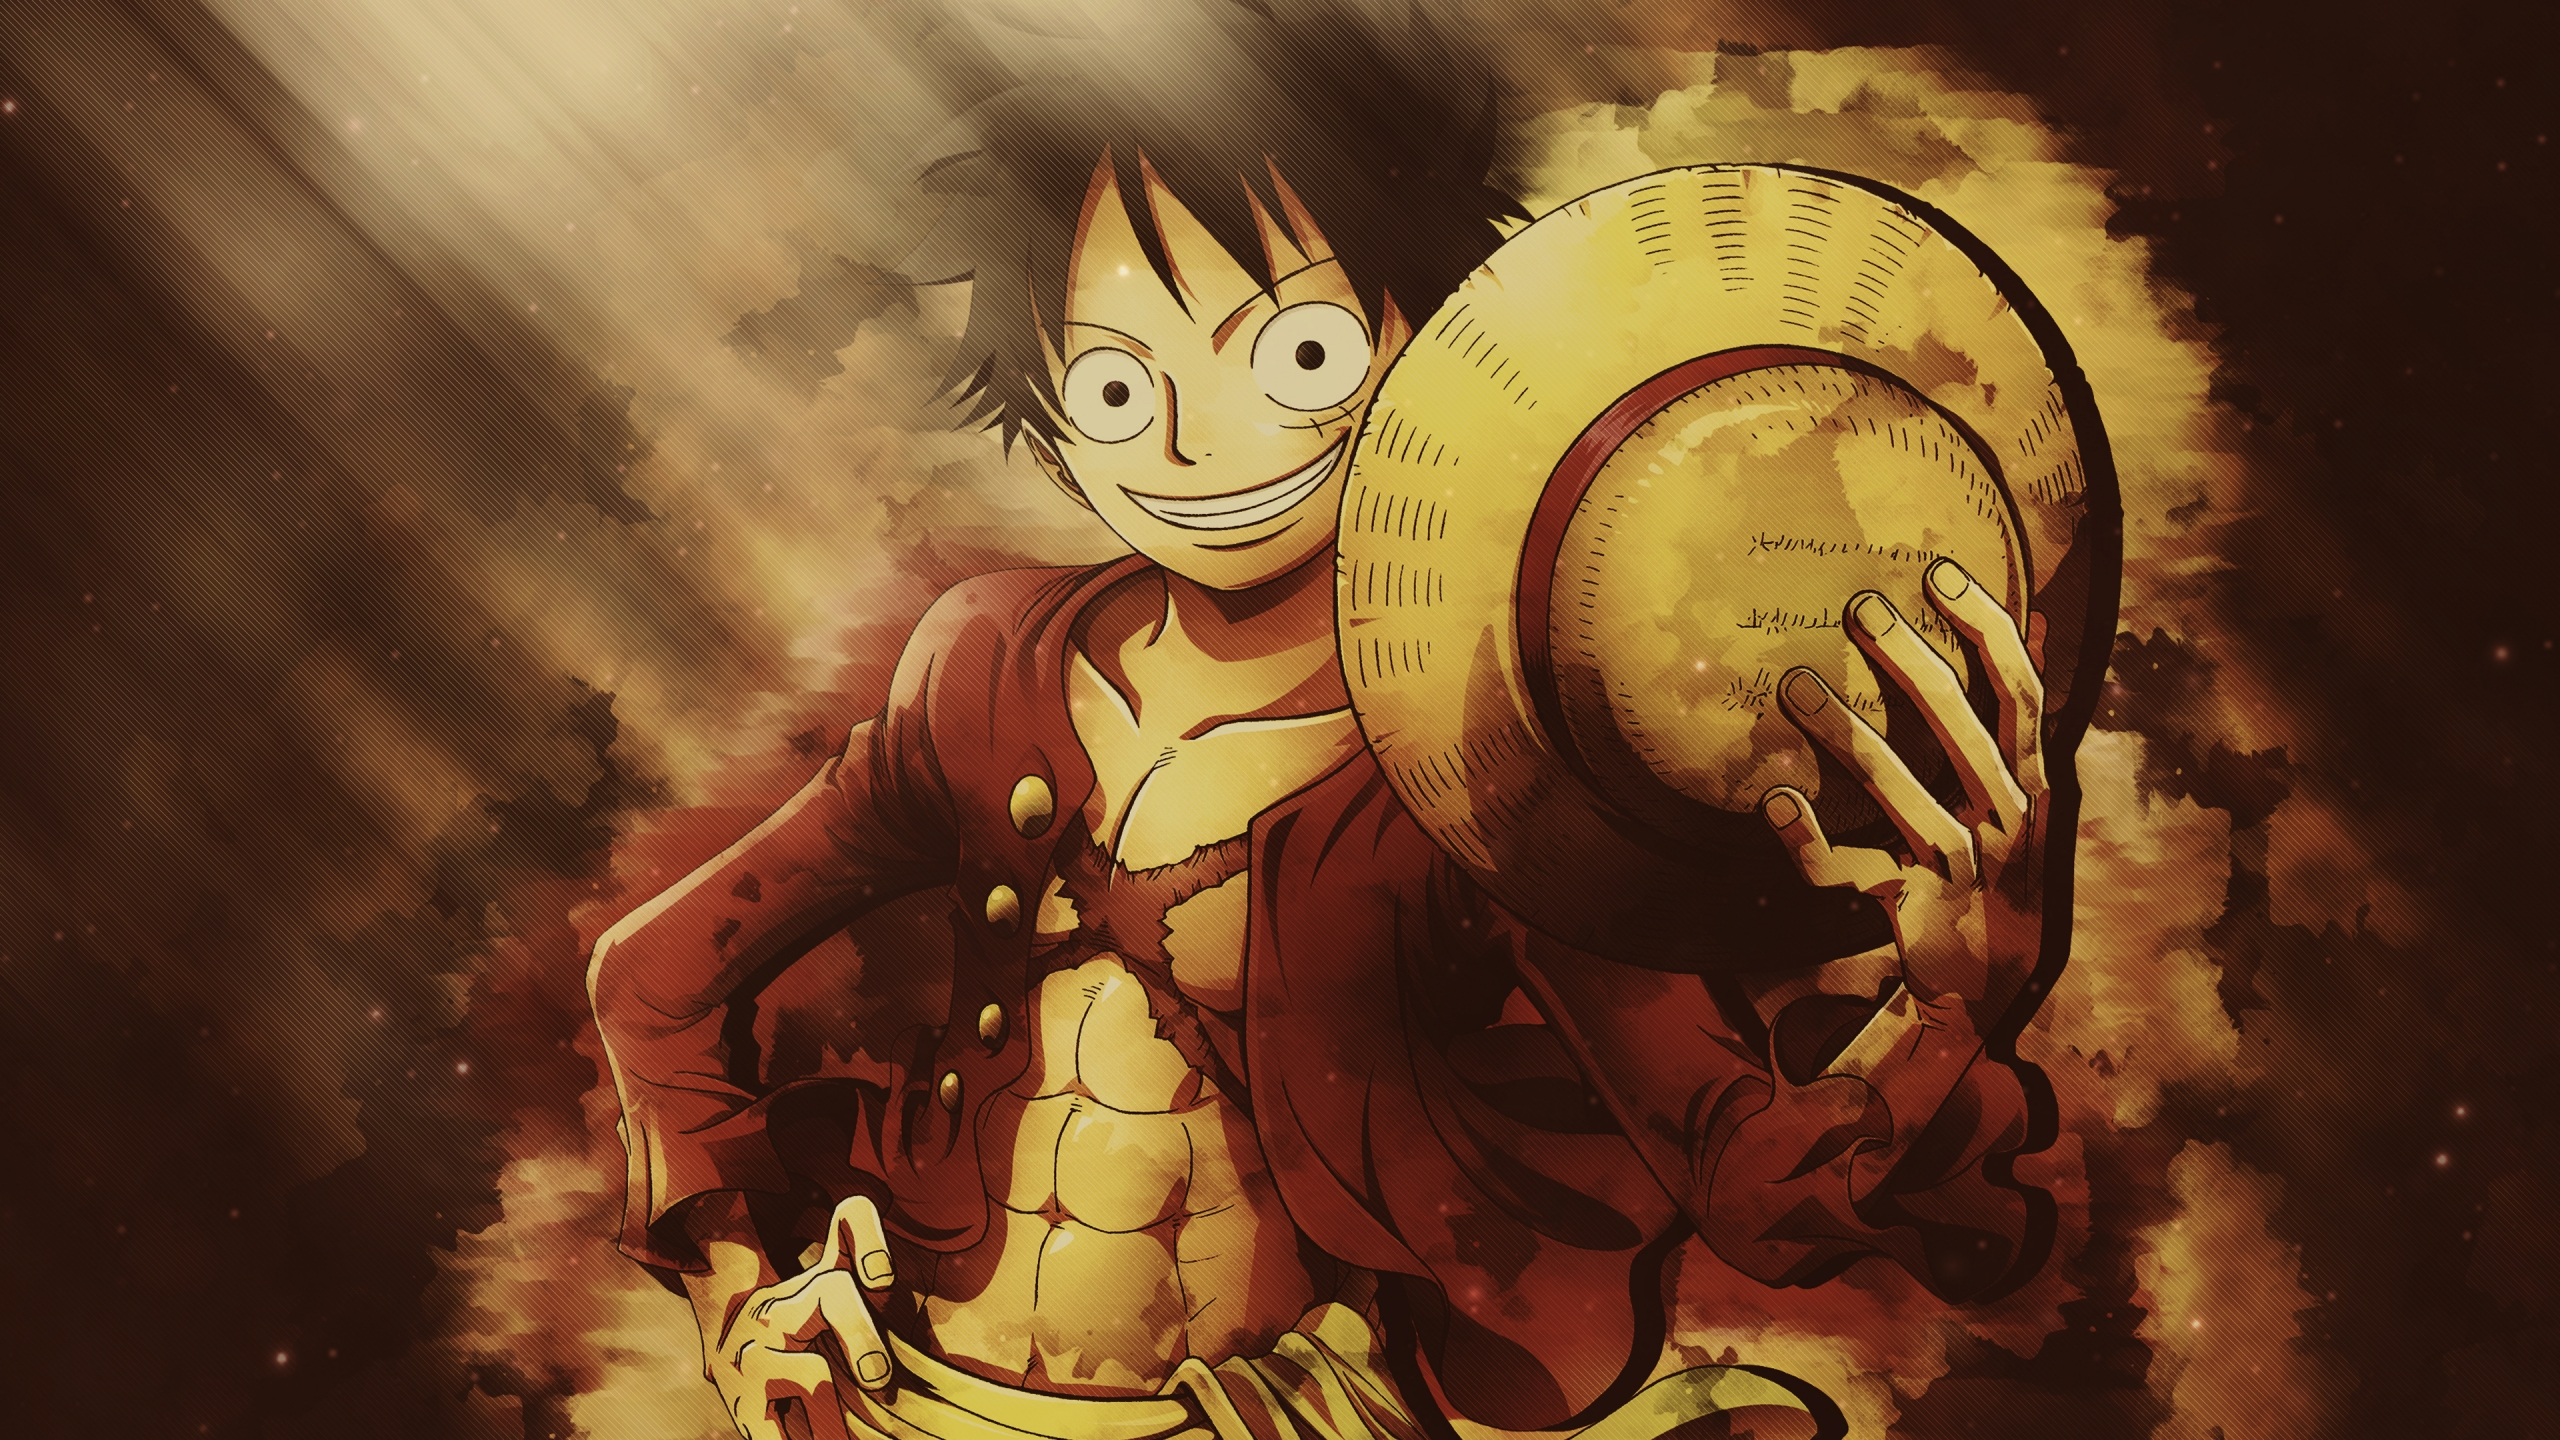 Monkey D Luffy From One Piece Anime Wallpaper 4k Ultra Hd Id 4017